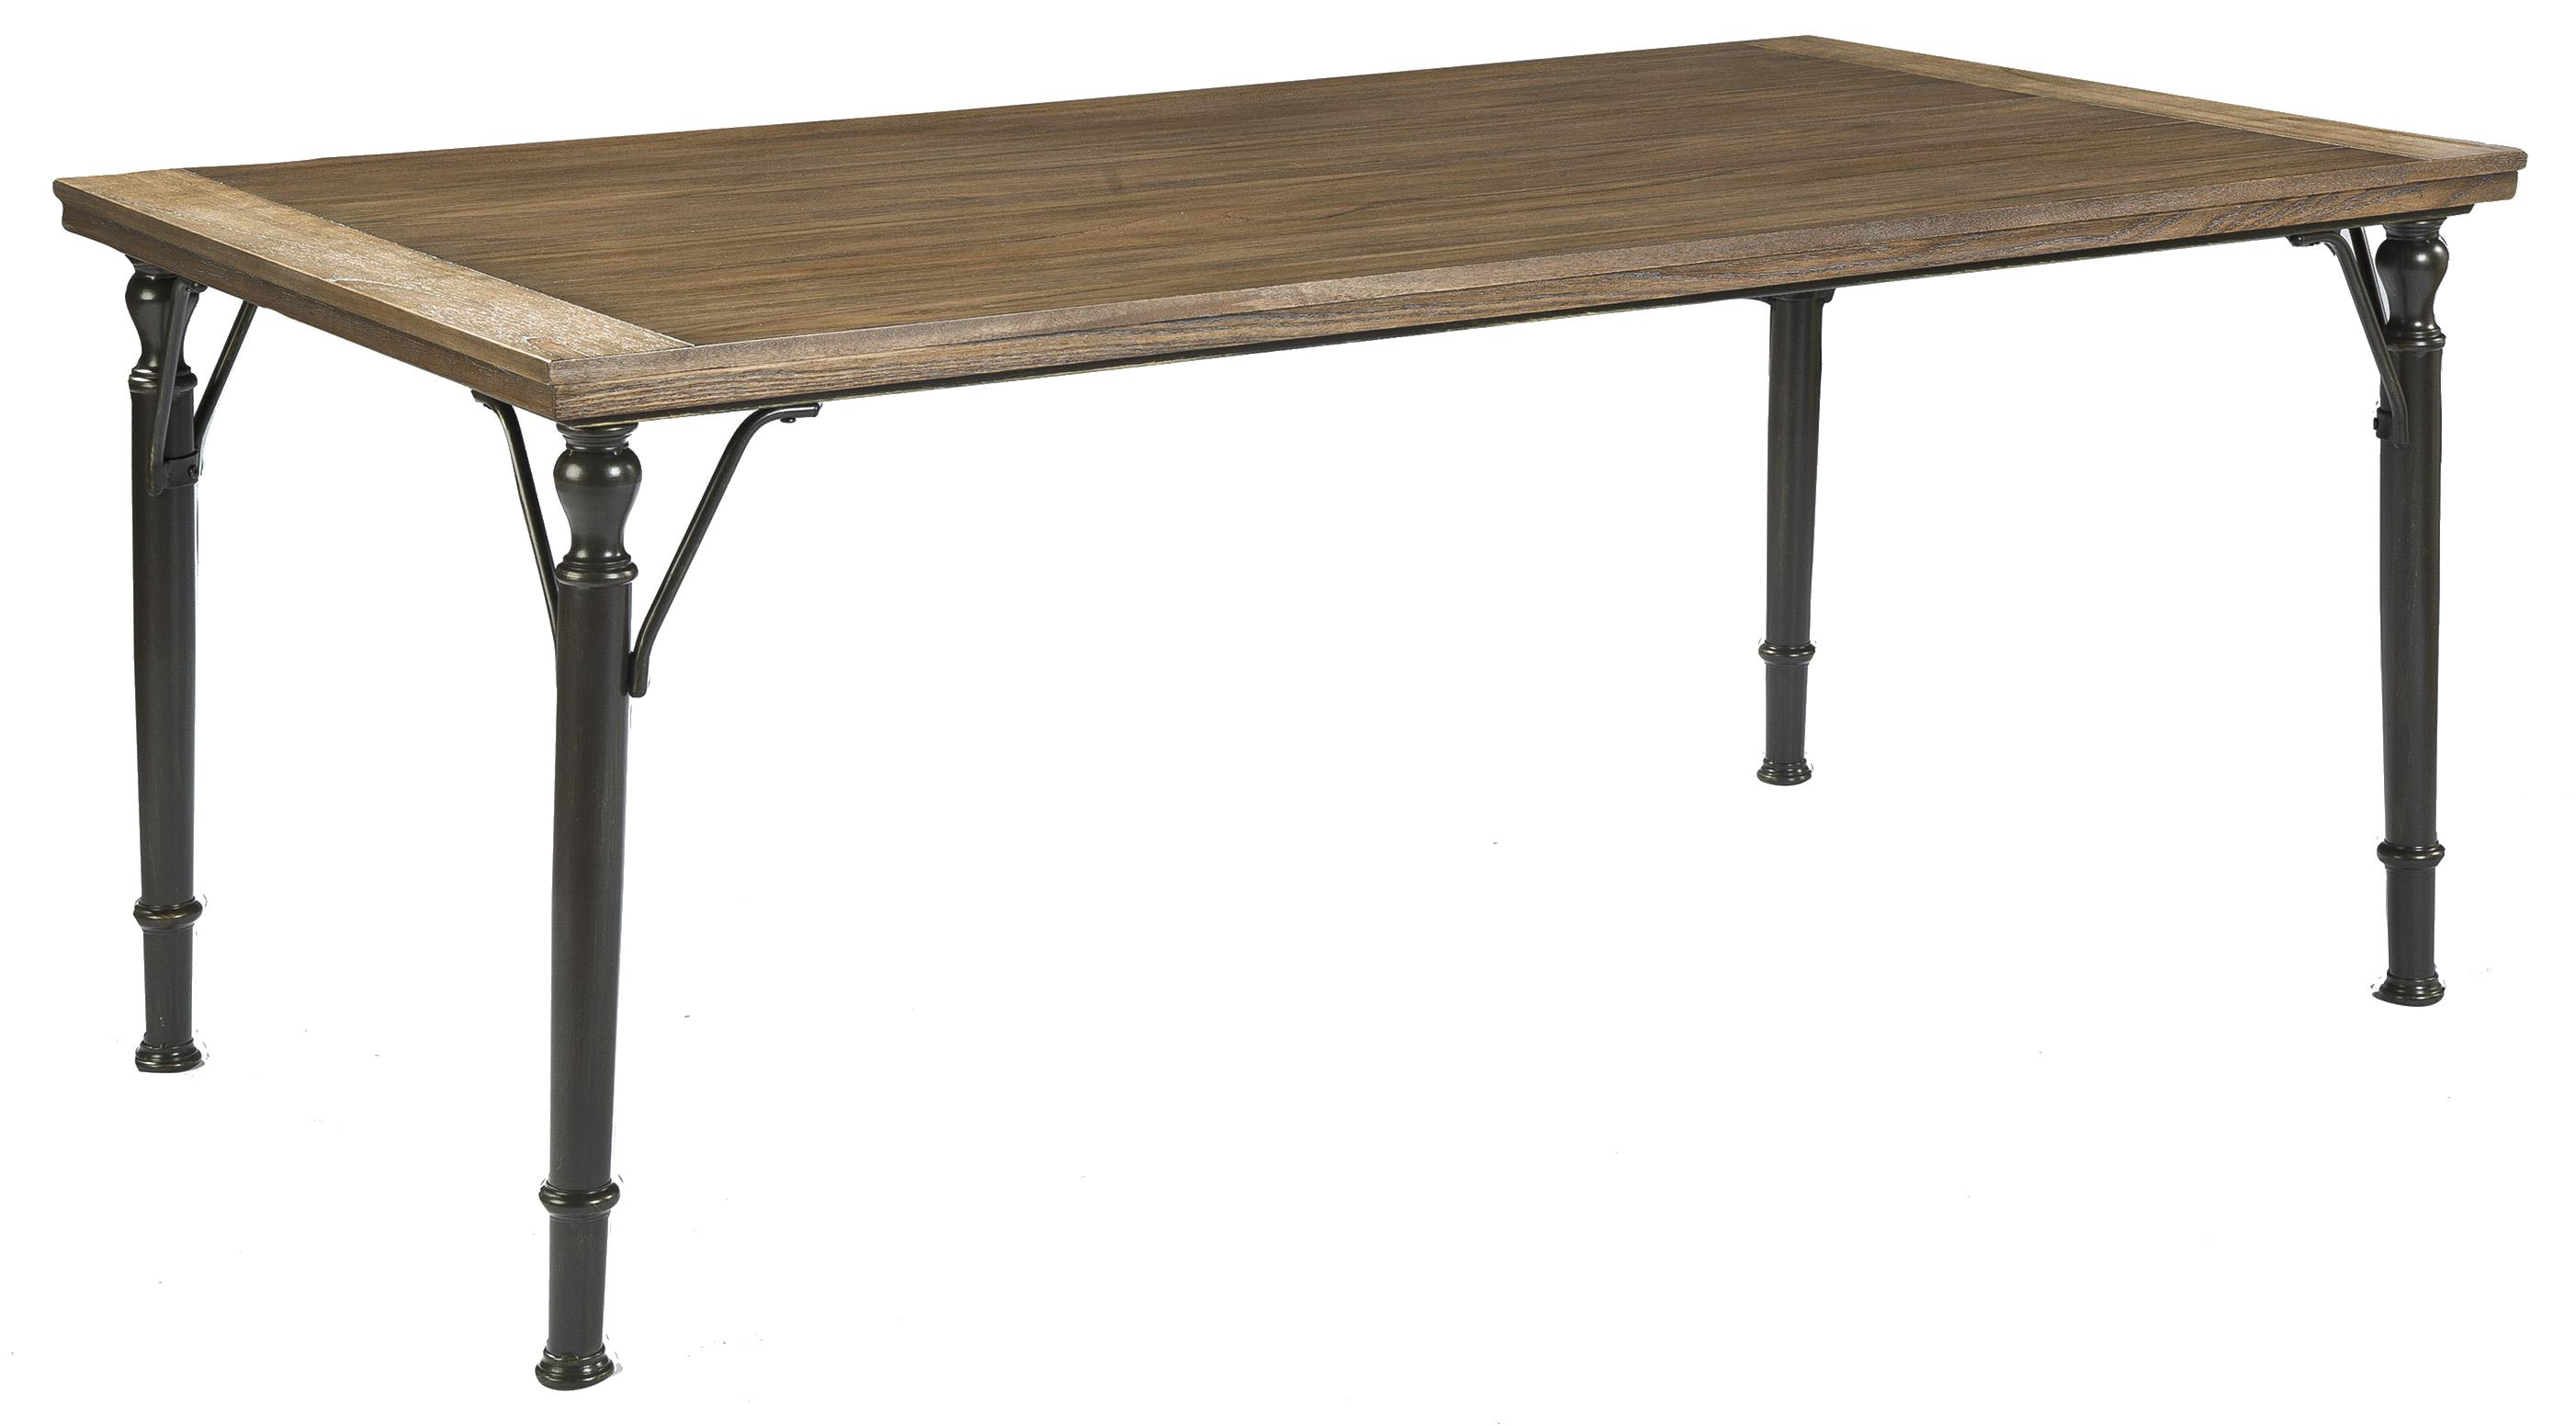 5 Piece Rectangular Dining Room Table Set w Wood Top  : products2Fsignaturedesignbyashley2Fcolor2Ftripton20d530d530 252B4x01 b2 from www.wolffurniture.com size 2804 x 1552 jpeg 223kB